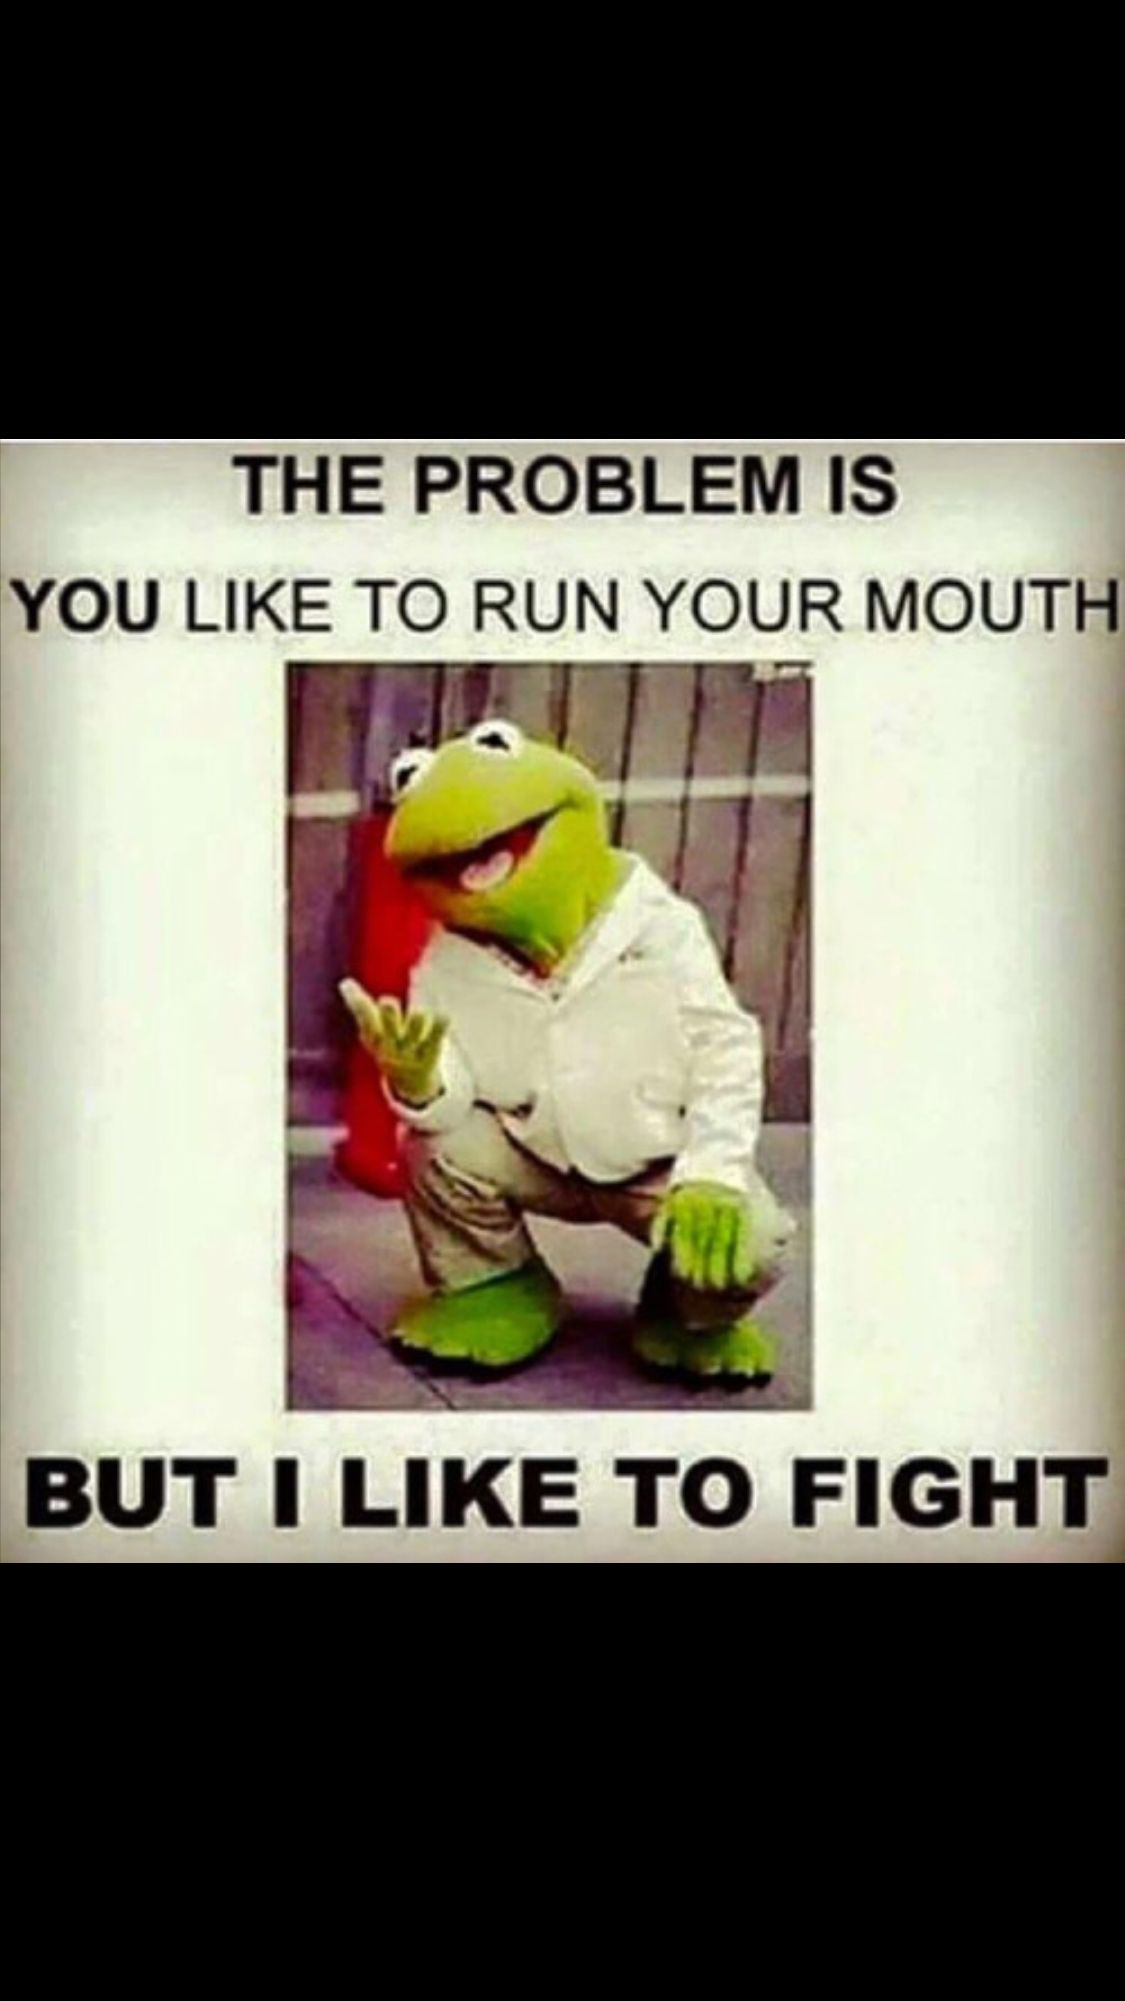 When did Kermit become such a bad ass?